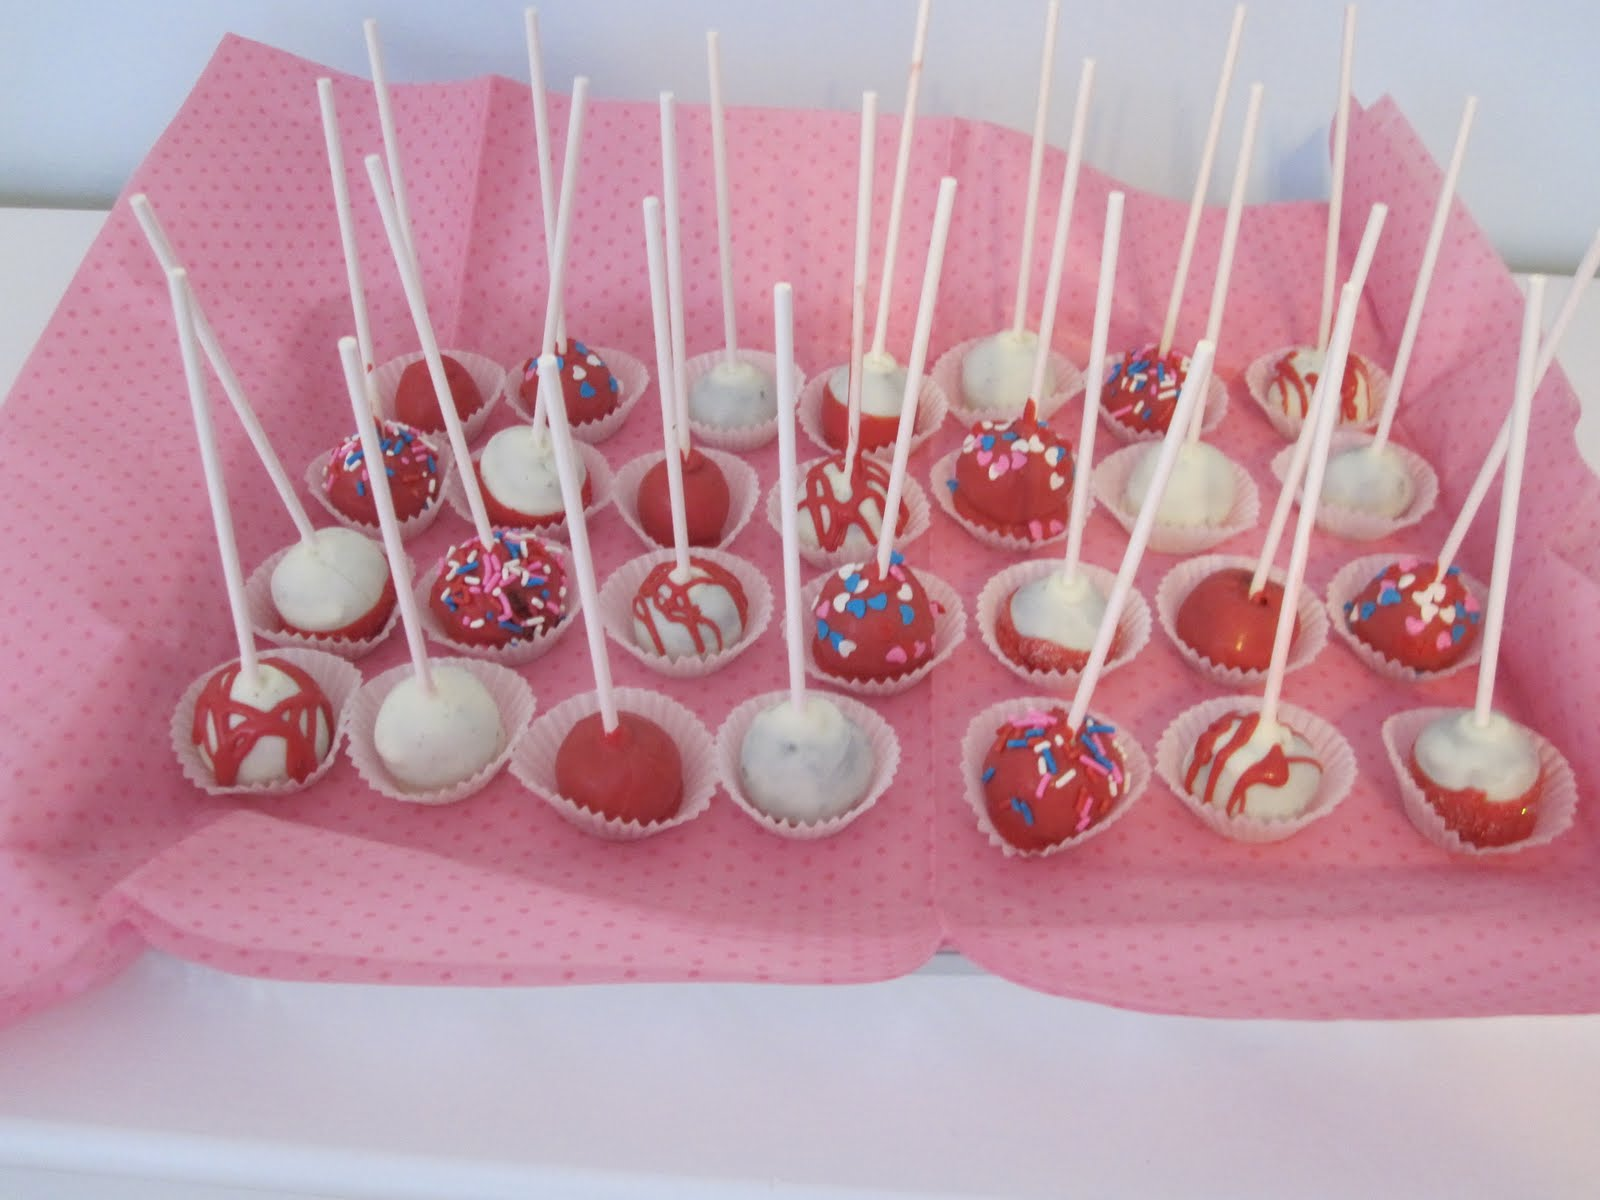 valentines cake pops : cake pops decorating ideas - www.pureclipart.com